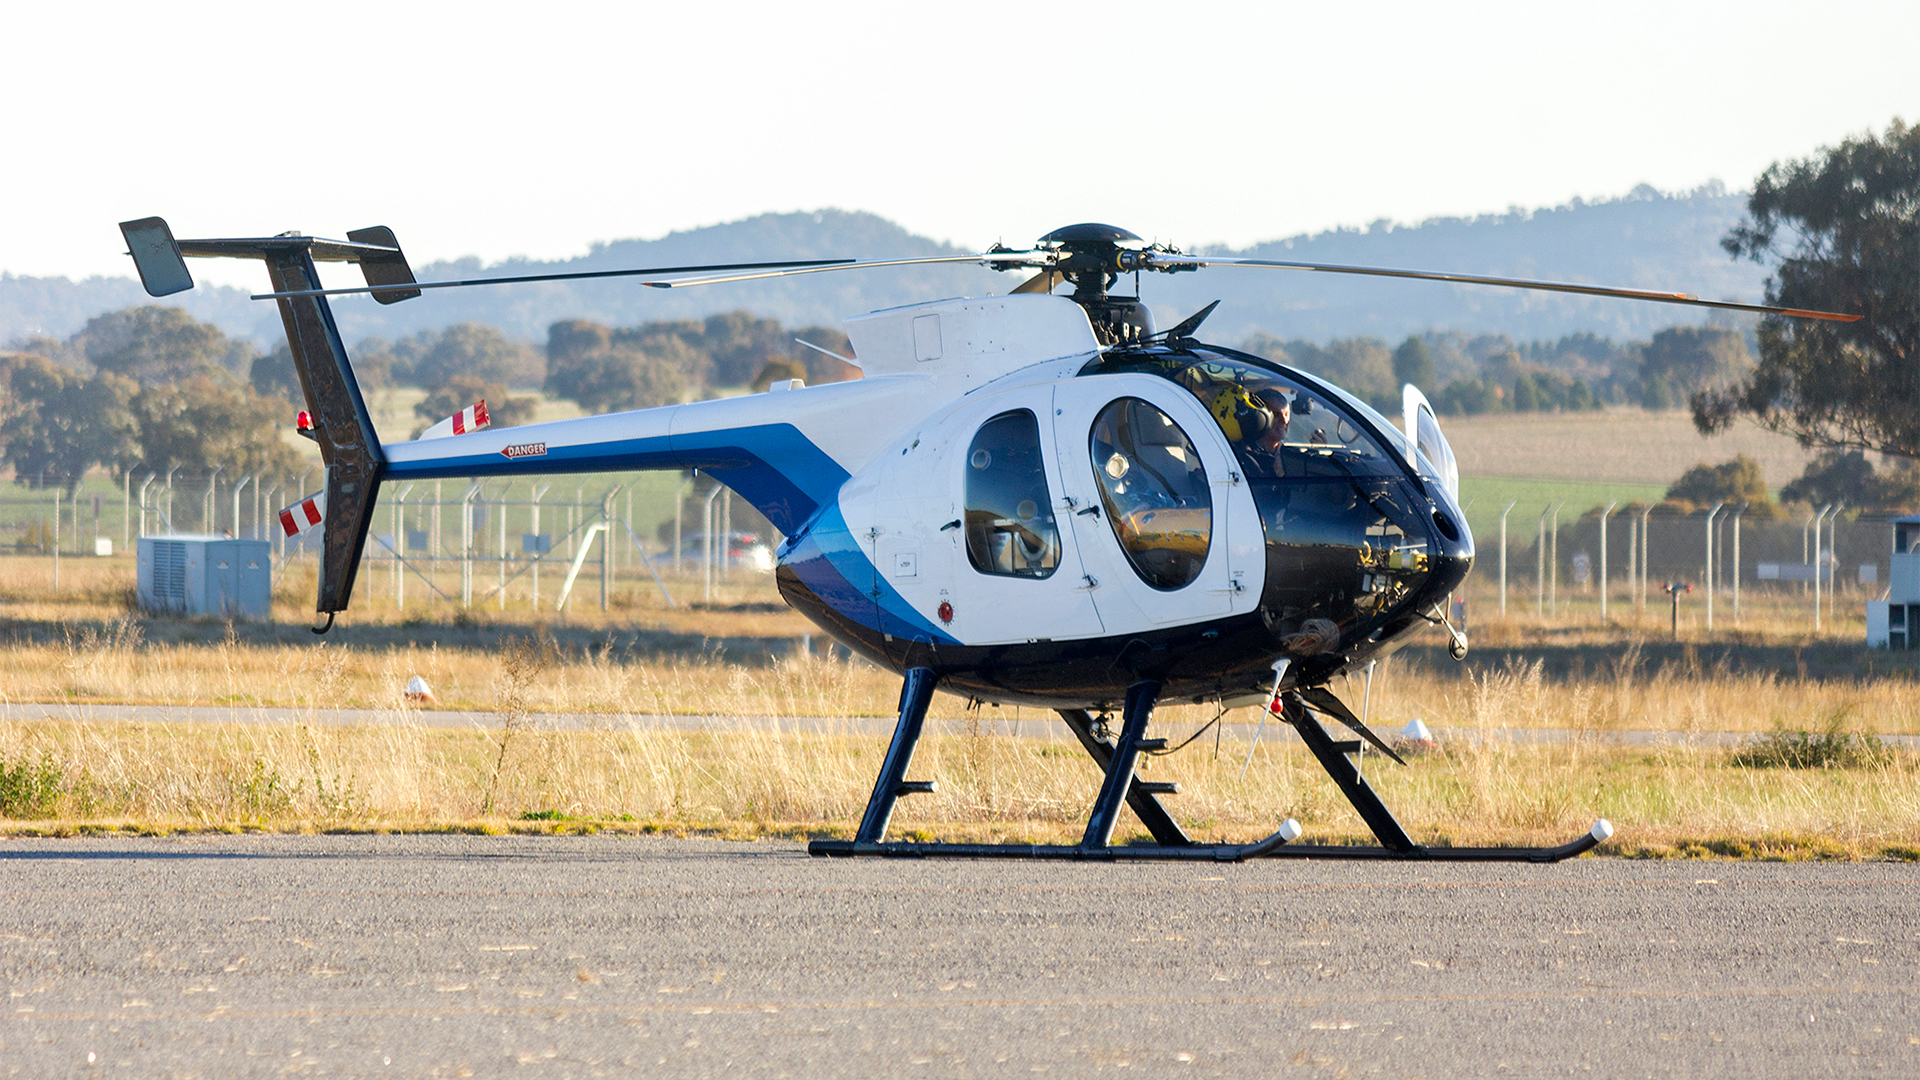 An MD369E helicopter at Wagga Wagga Airport in Forest HIll, Australia